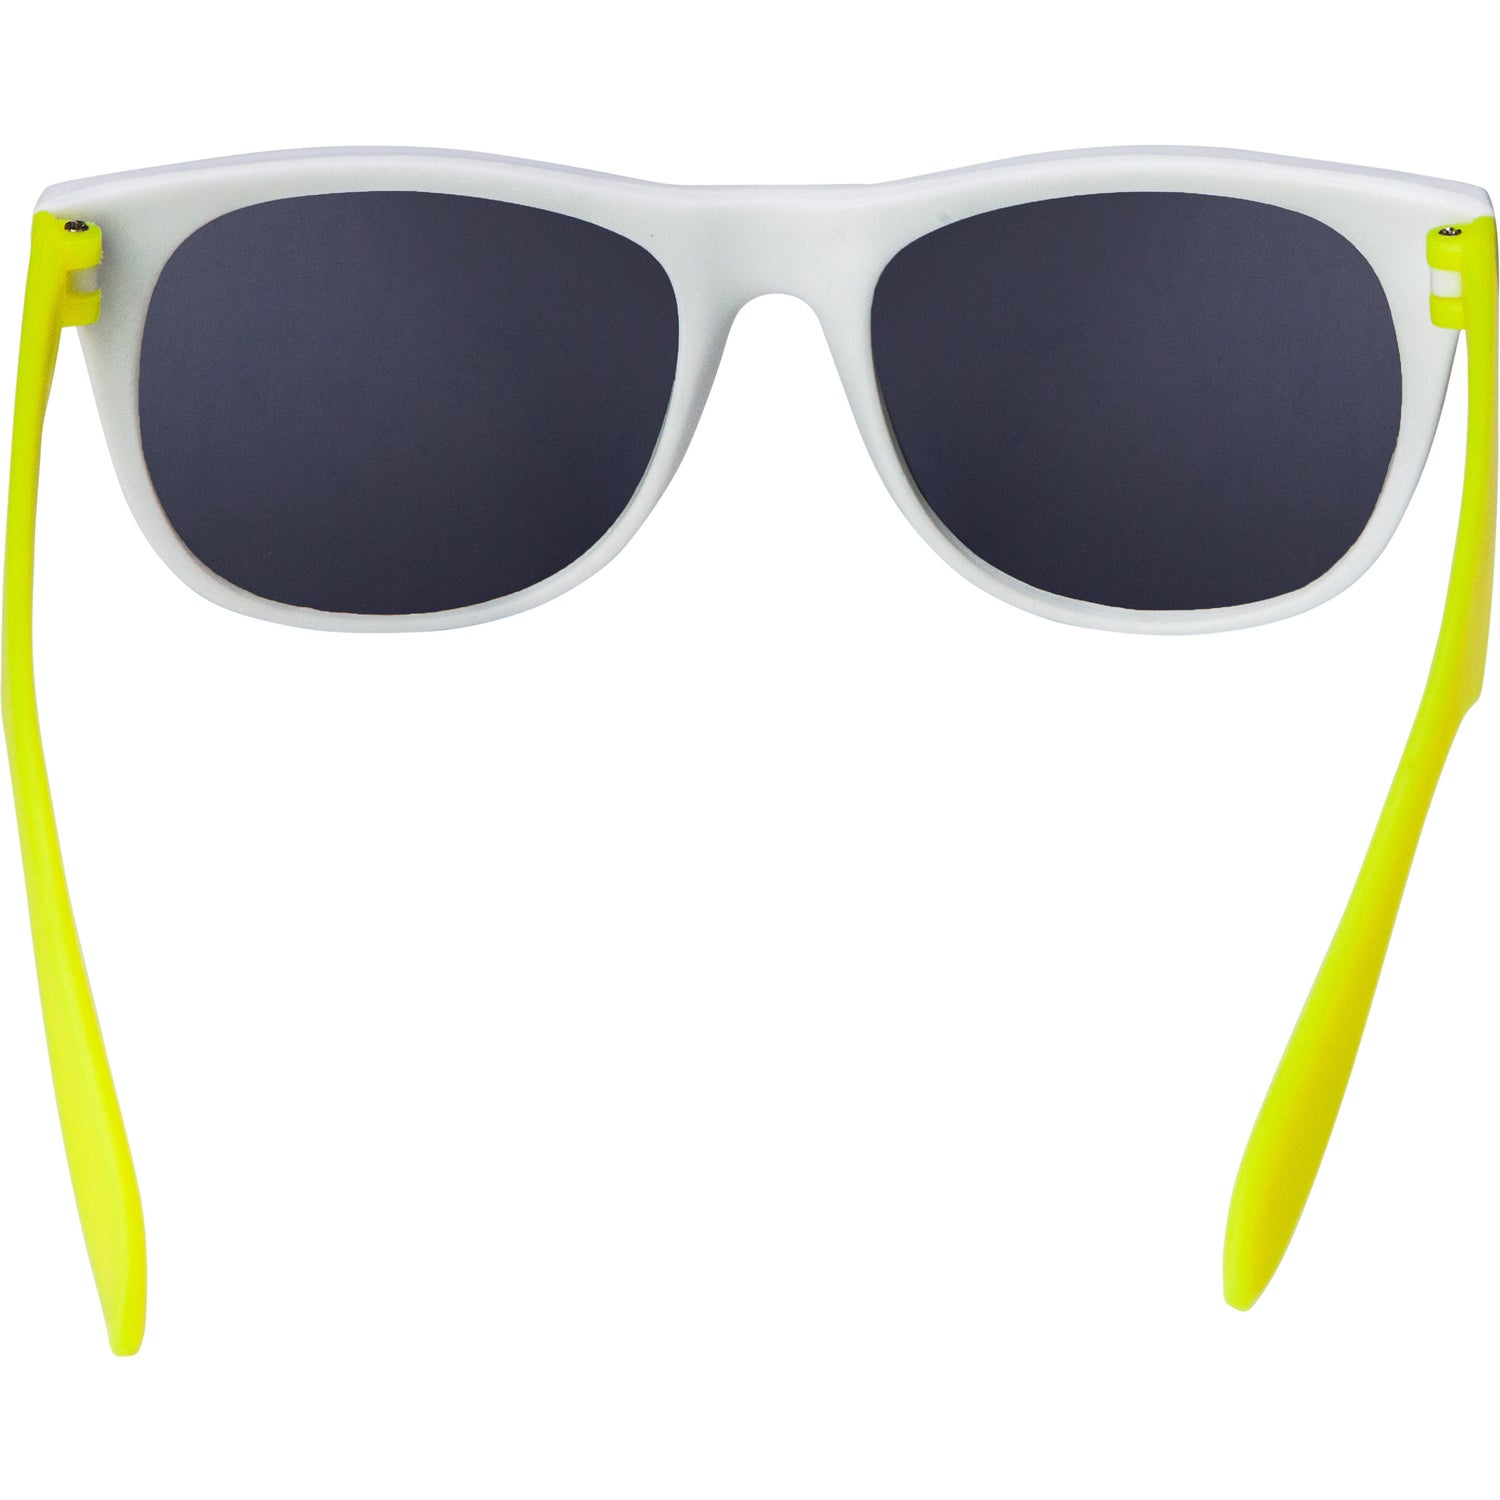 9368be3a282 Rubberized Sunglasses